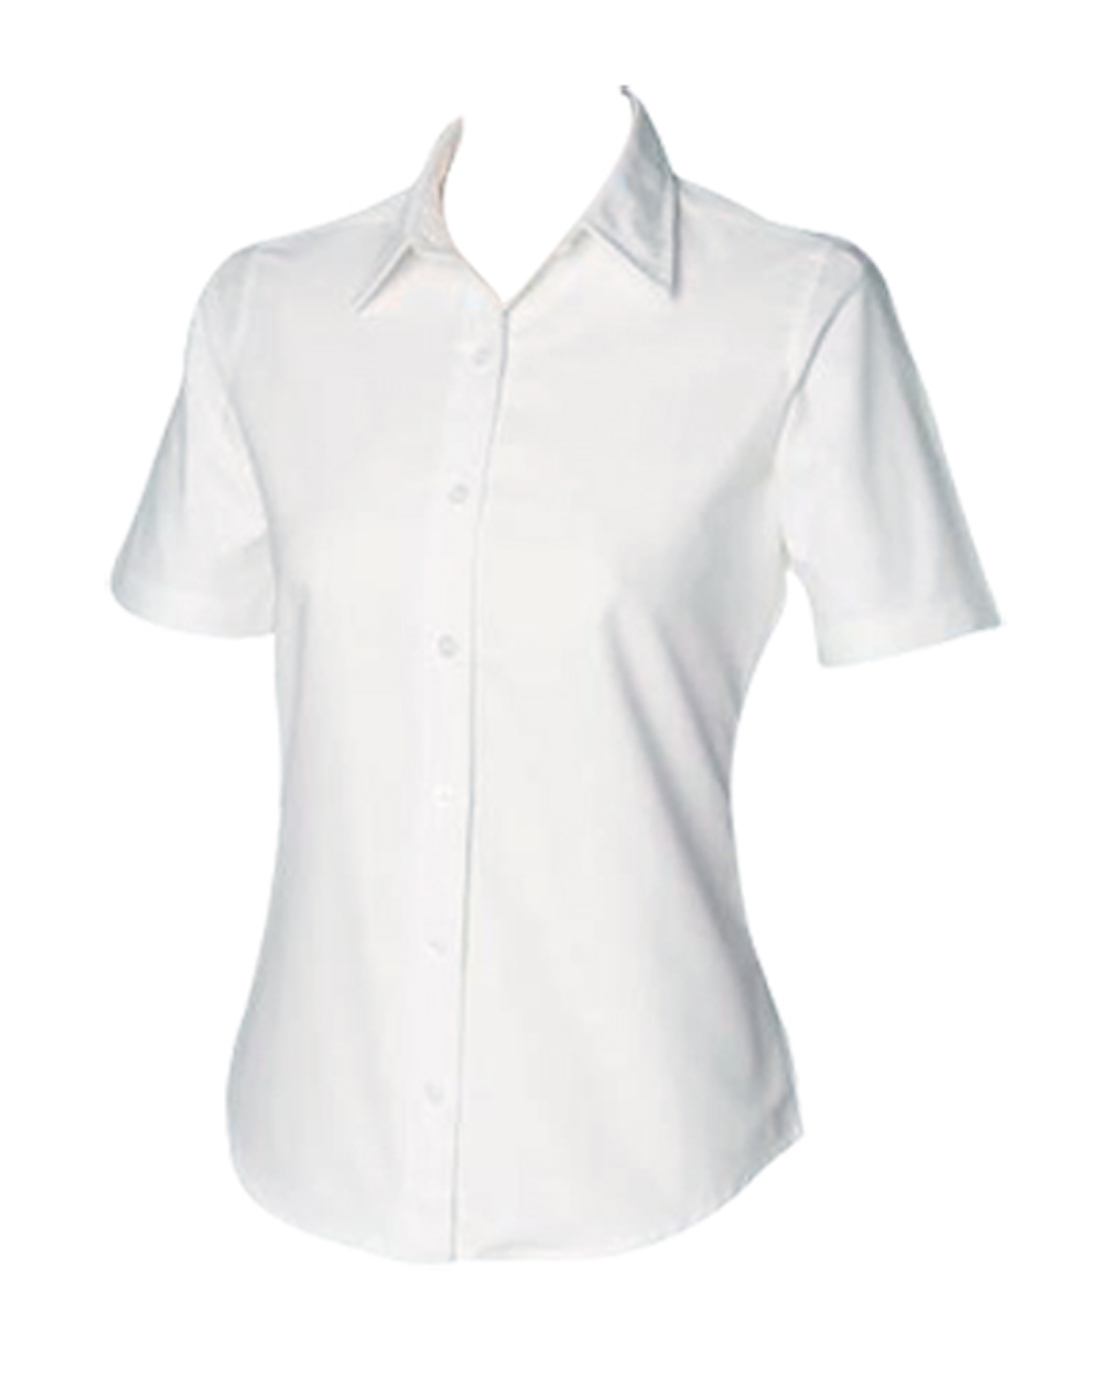 Ladies Short Sleeve Oxford - Code 66444